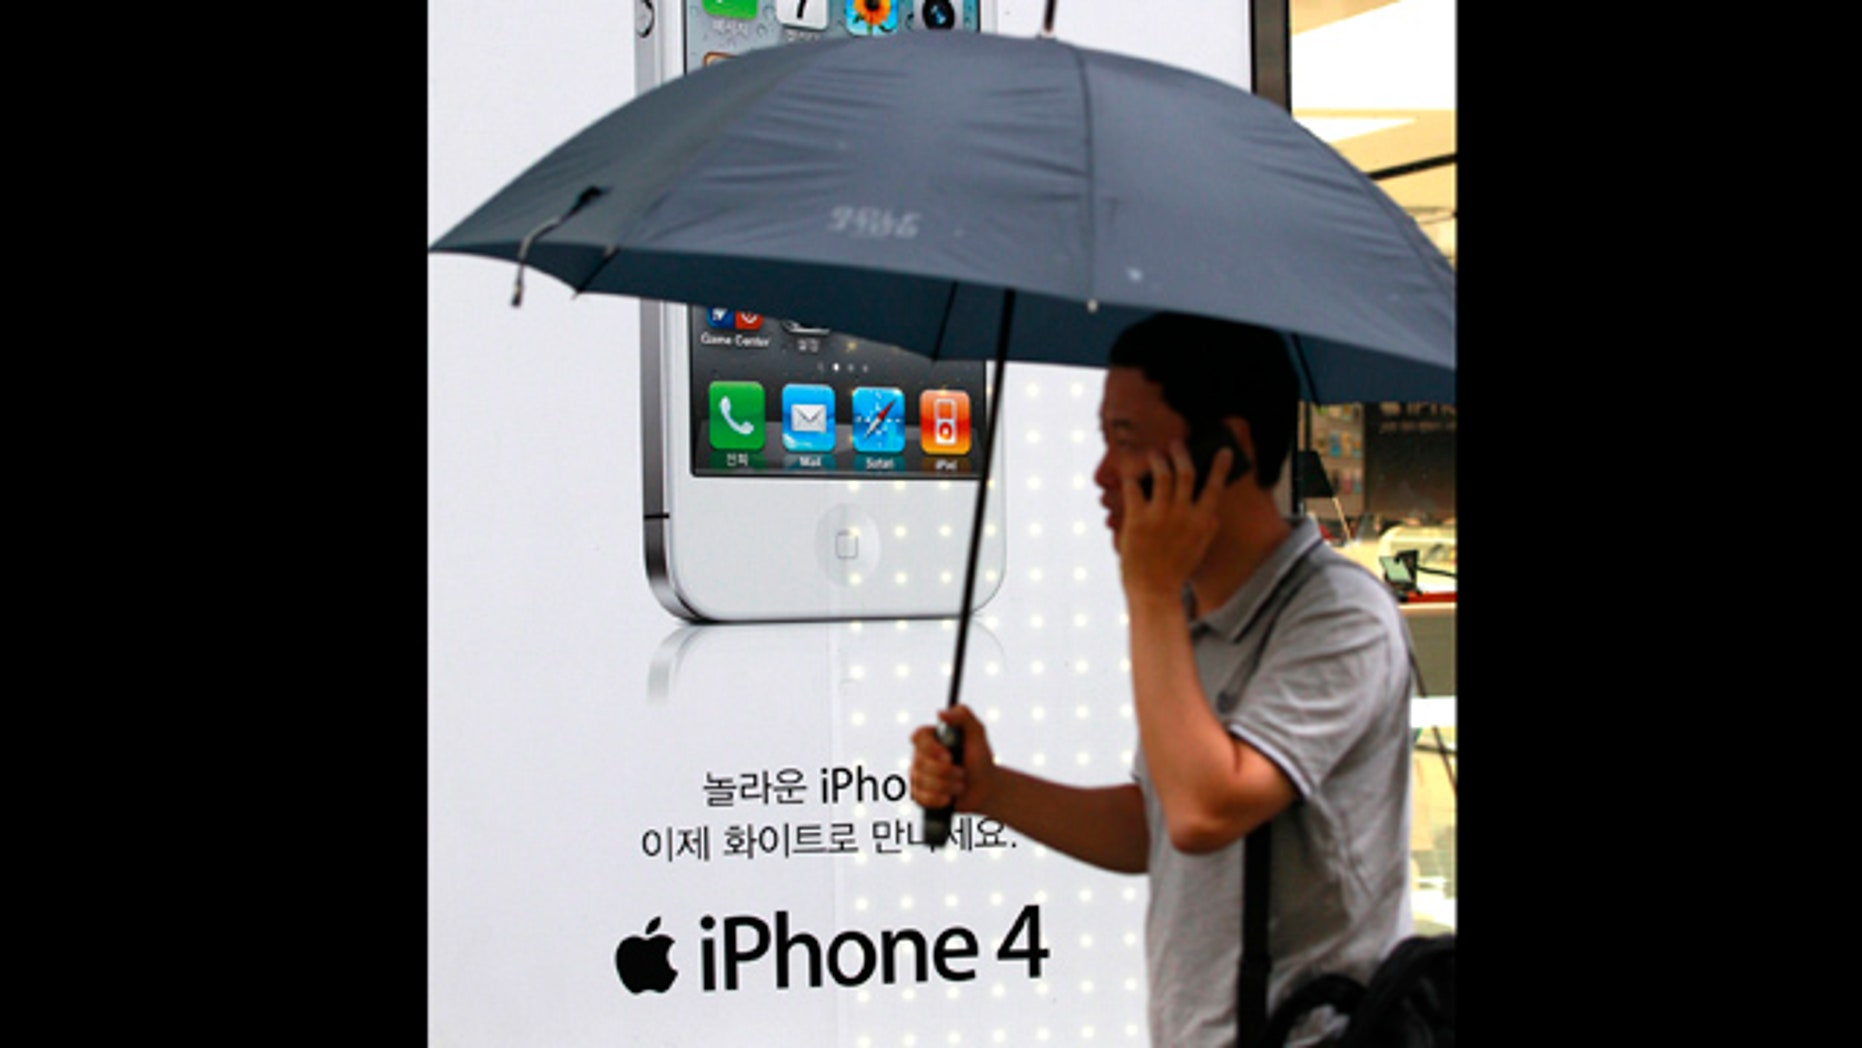 Aug. 17, 2011: A man passes by an Apple iPhone advertisement at downtown Seoul, South Korea. A group of nearly 27,000 South Koreans is suing Apple for $26 million for what they claim are privacy violations from the collection of iPhone user location information.